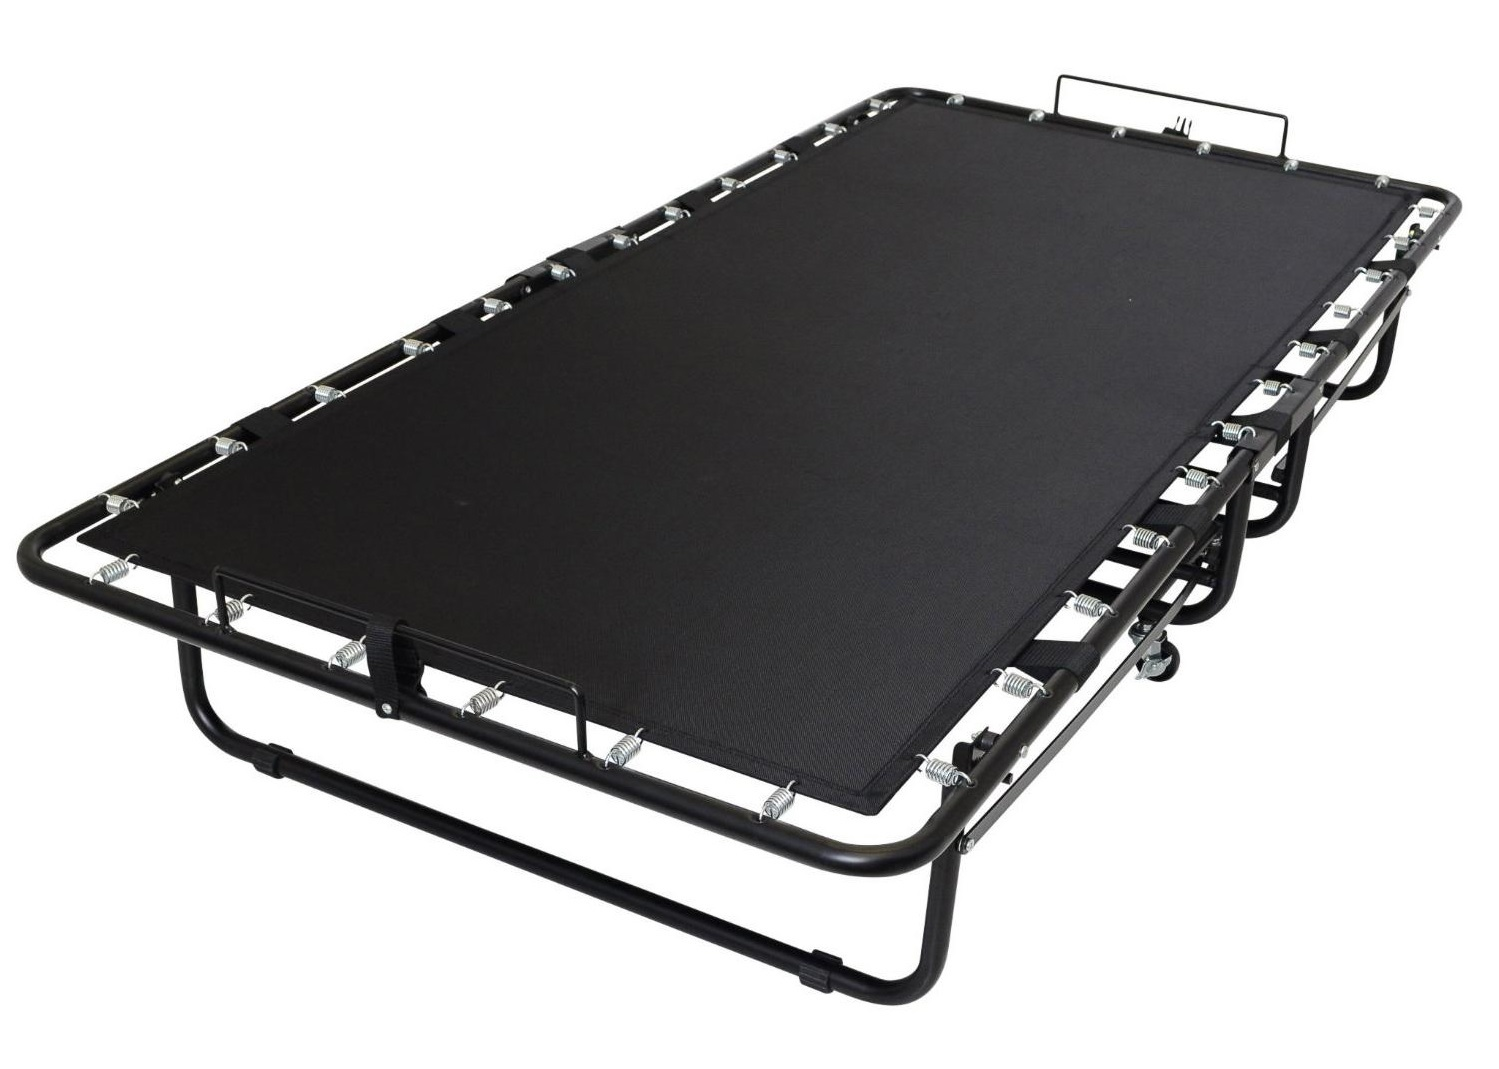 Milliard Milliard Premium Folding Bed - Construction